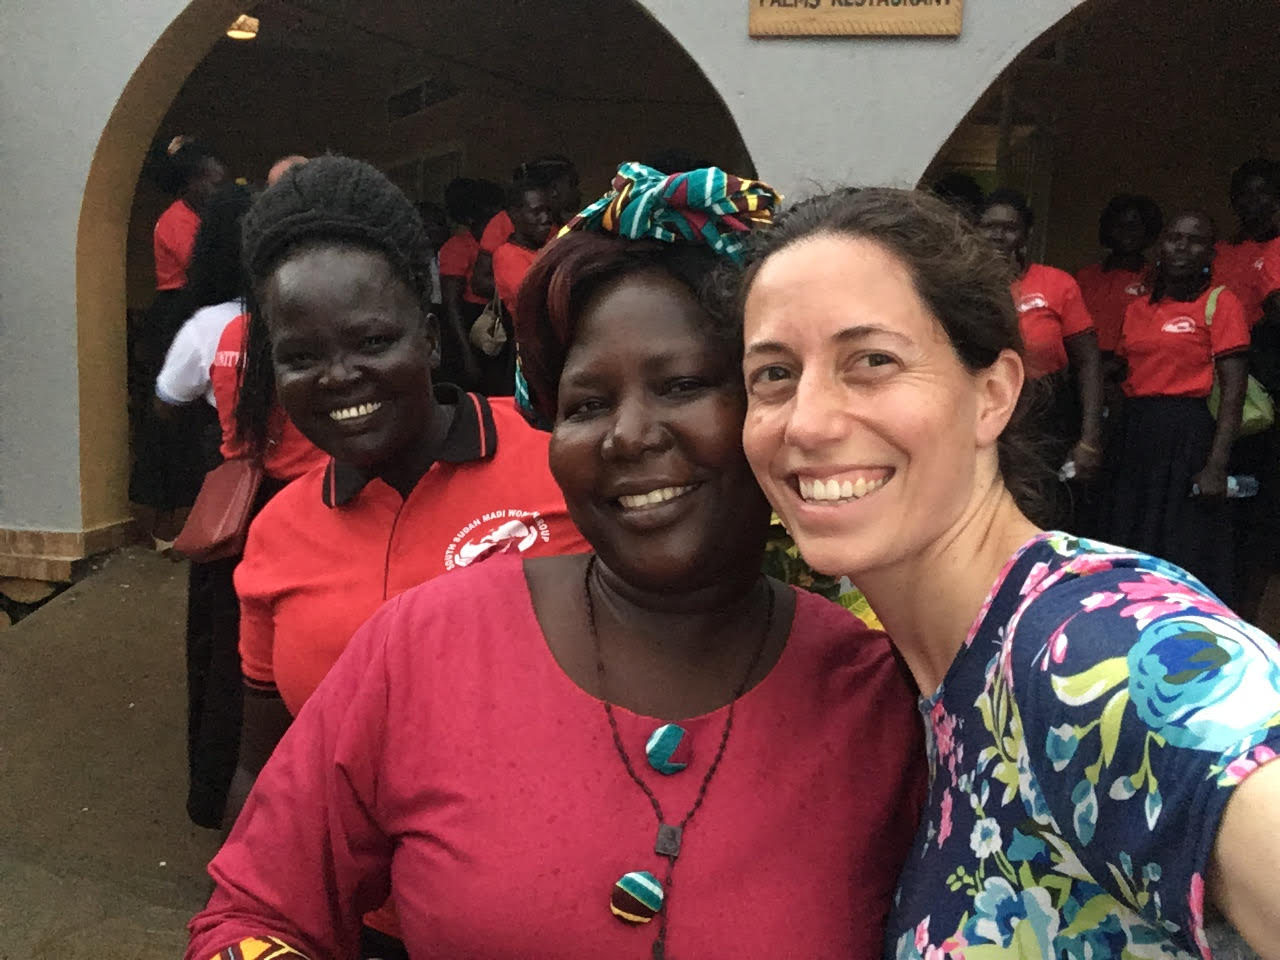 After experiencing a learning trip to Africa with New Community Projects, Mandy North felt moved to stand in solidarity with her worldly neighbors by participating in a seven day refugee ration challenge. The Brave Files.